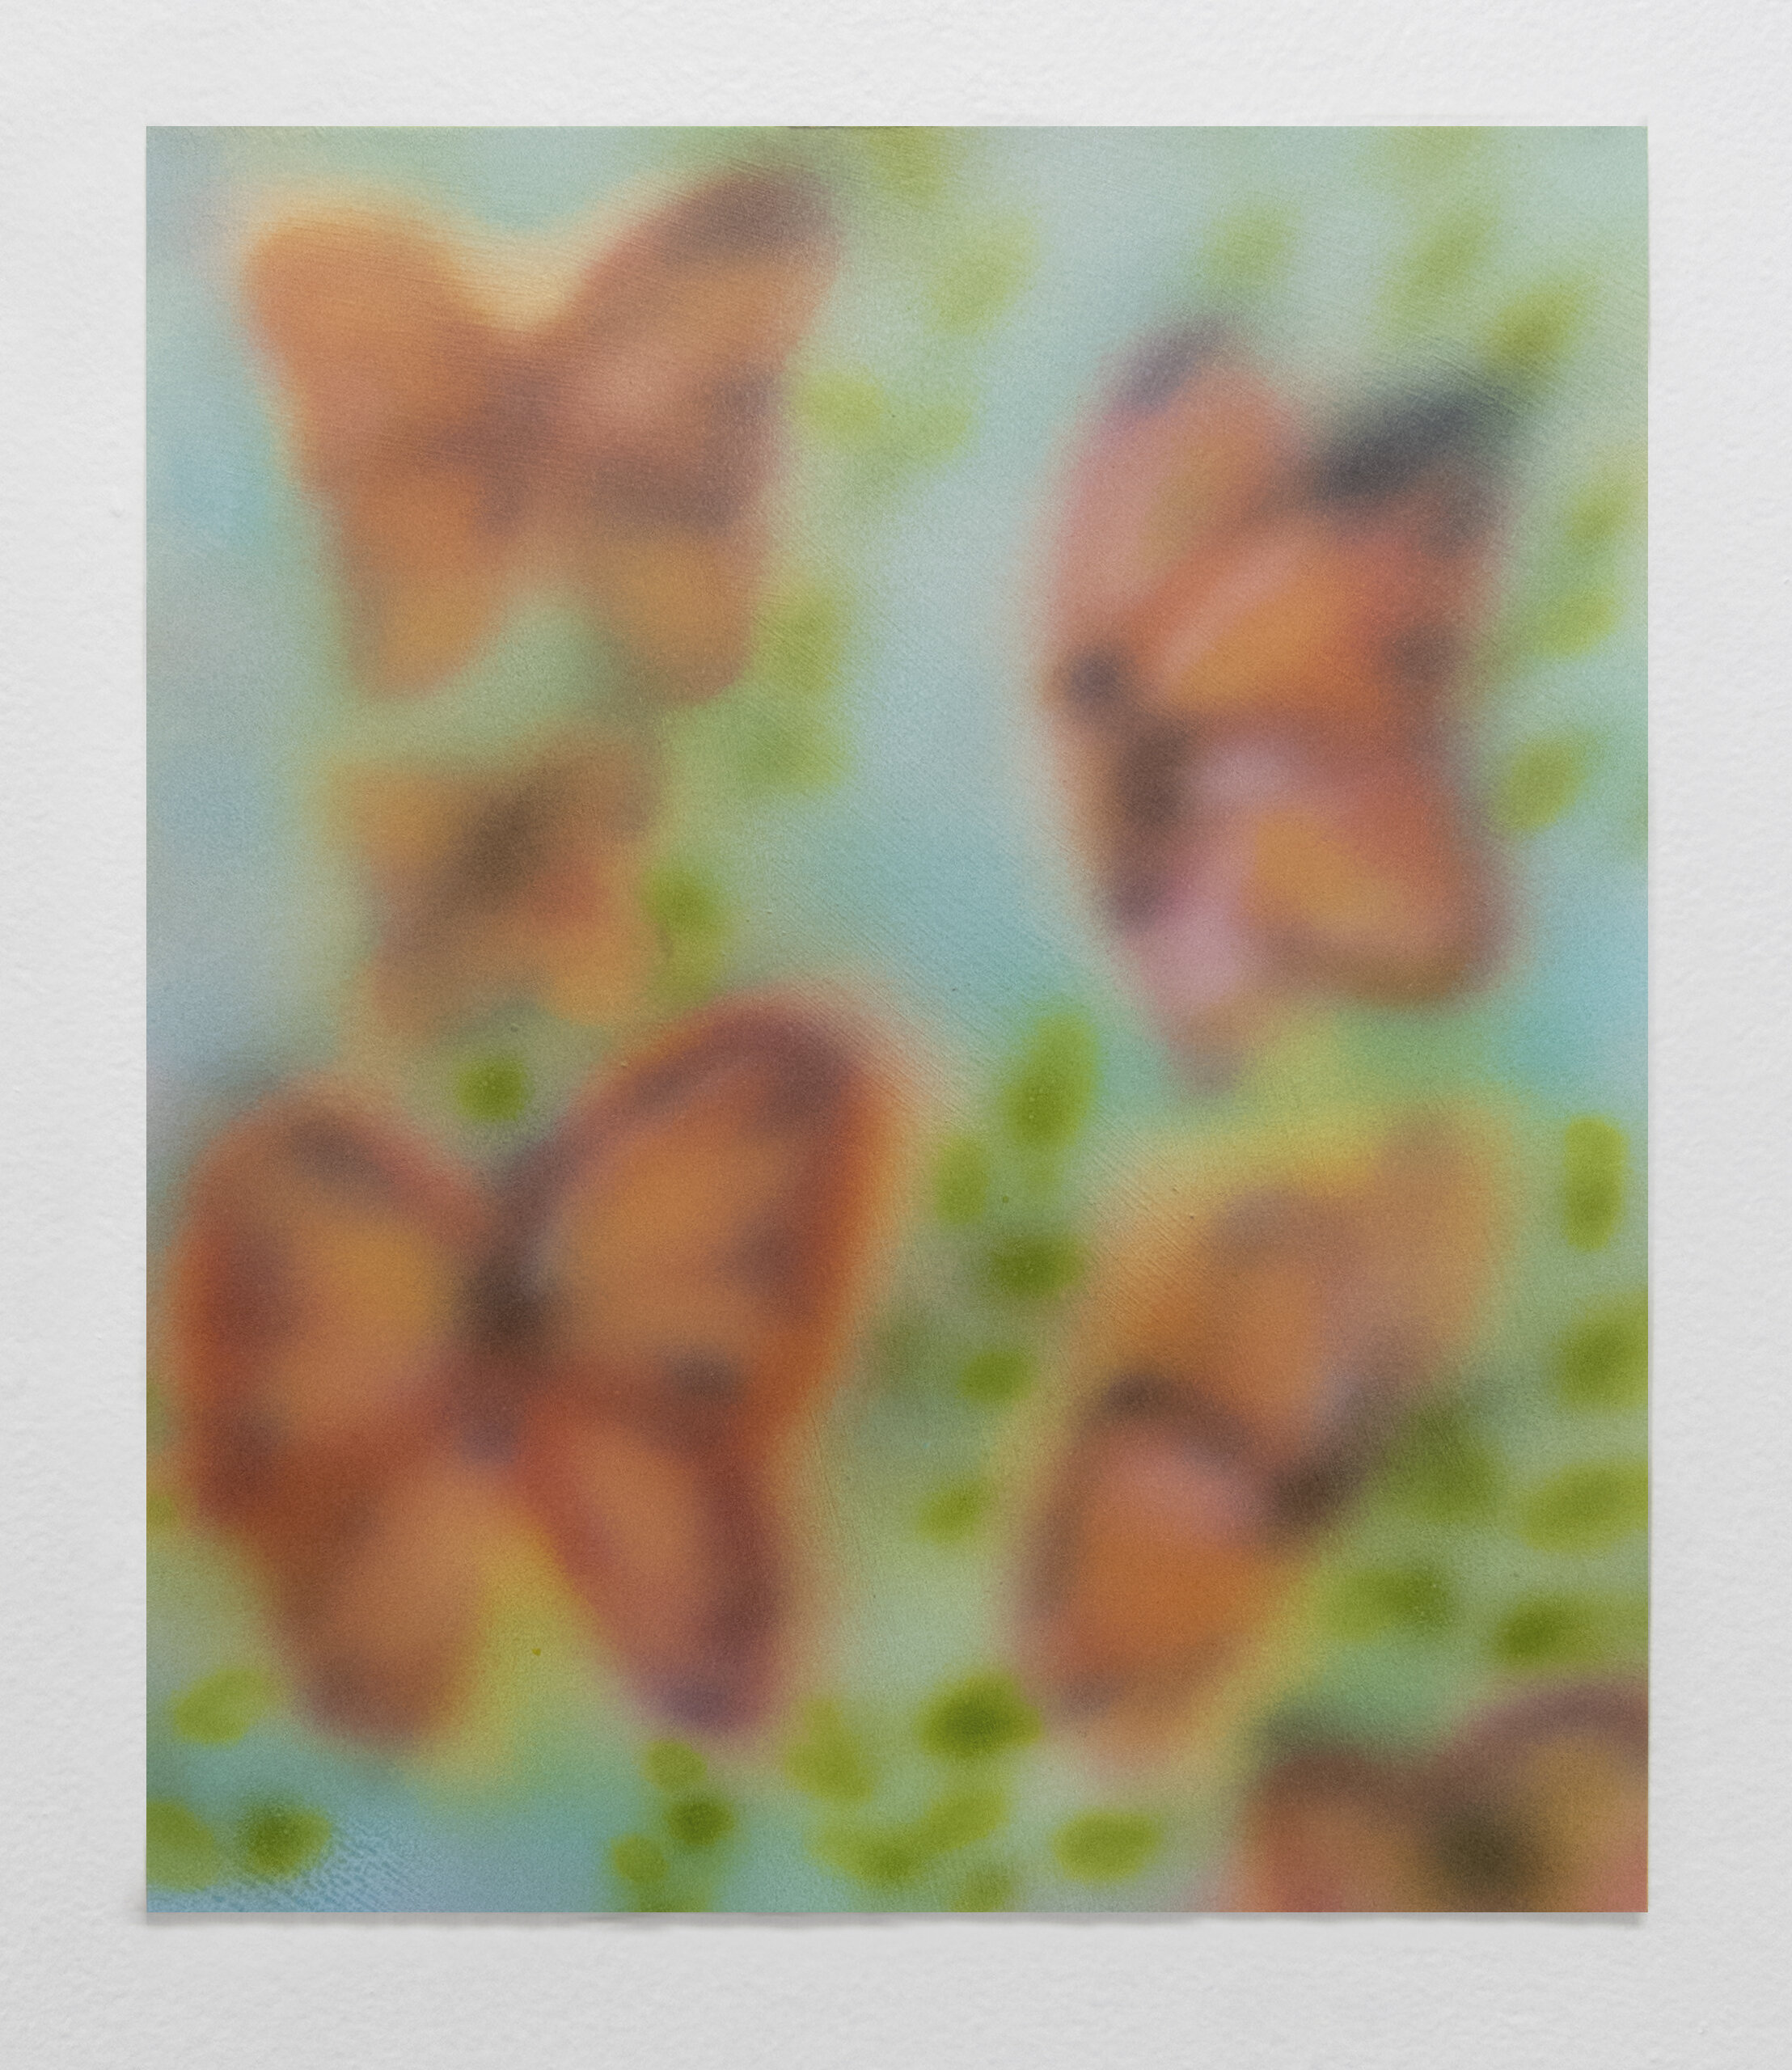 Untitled (Small Butterflies)